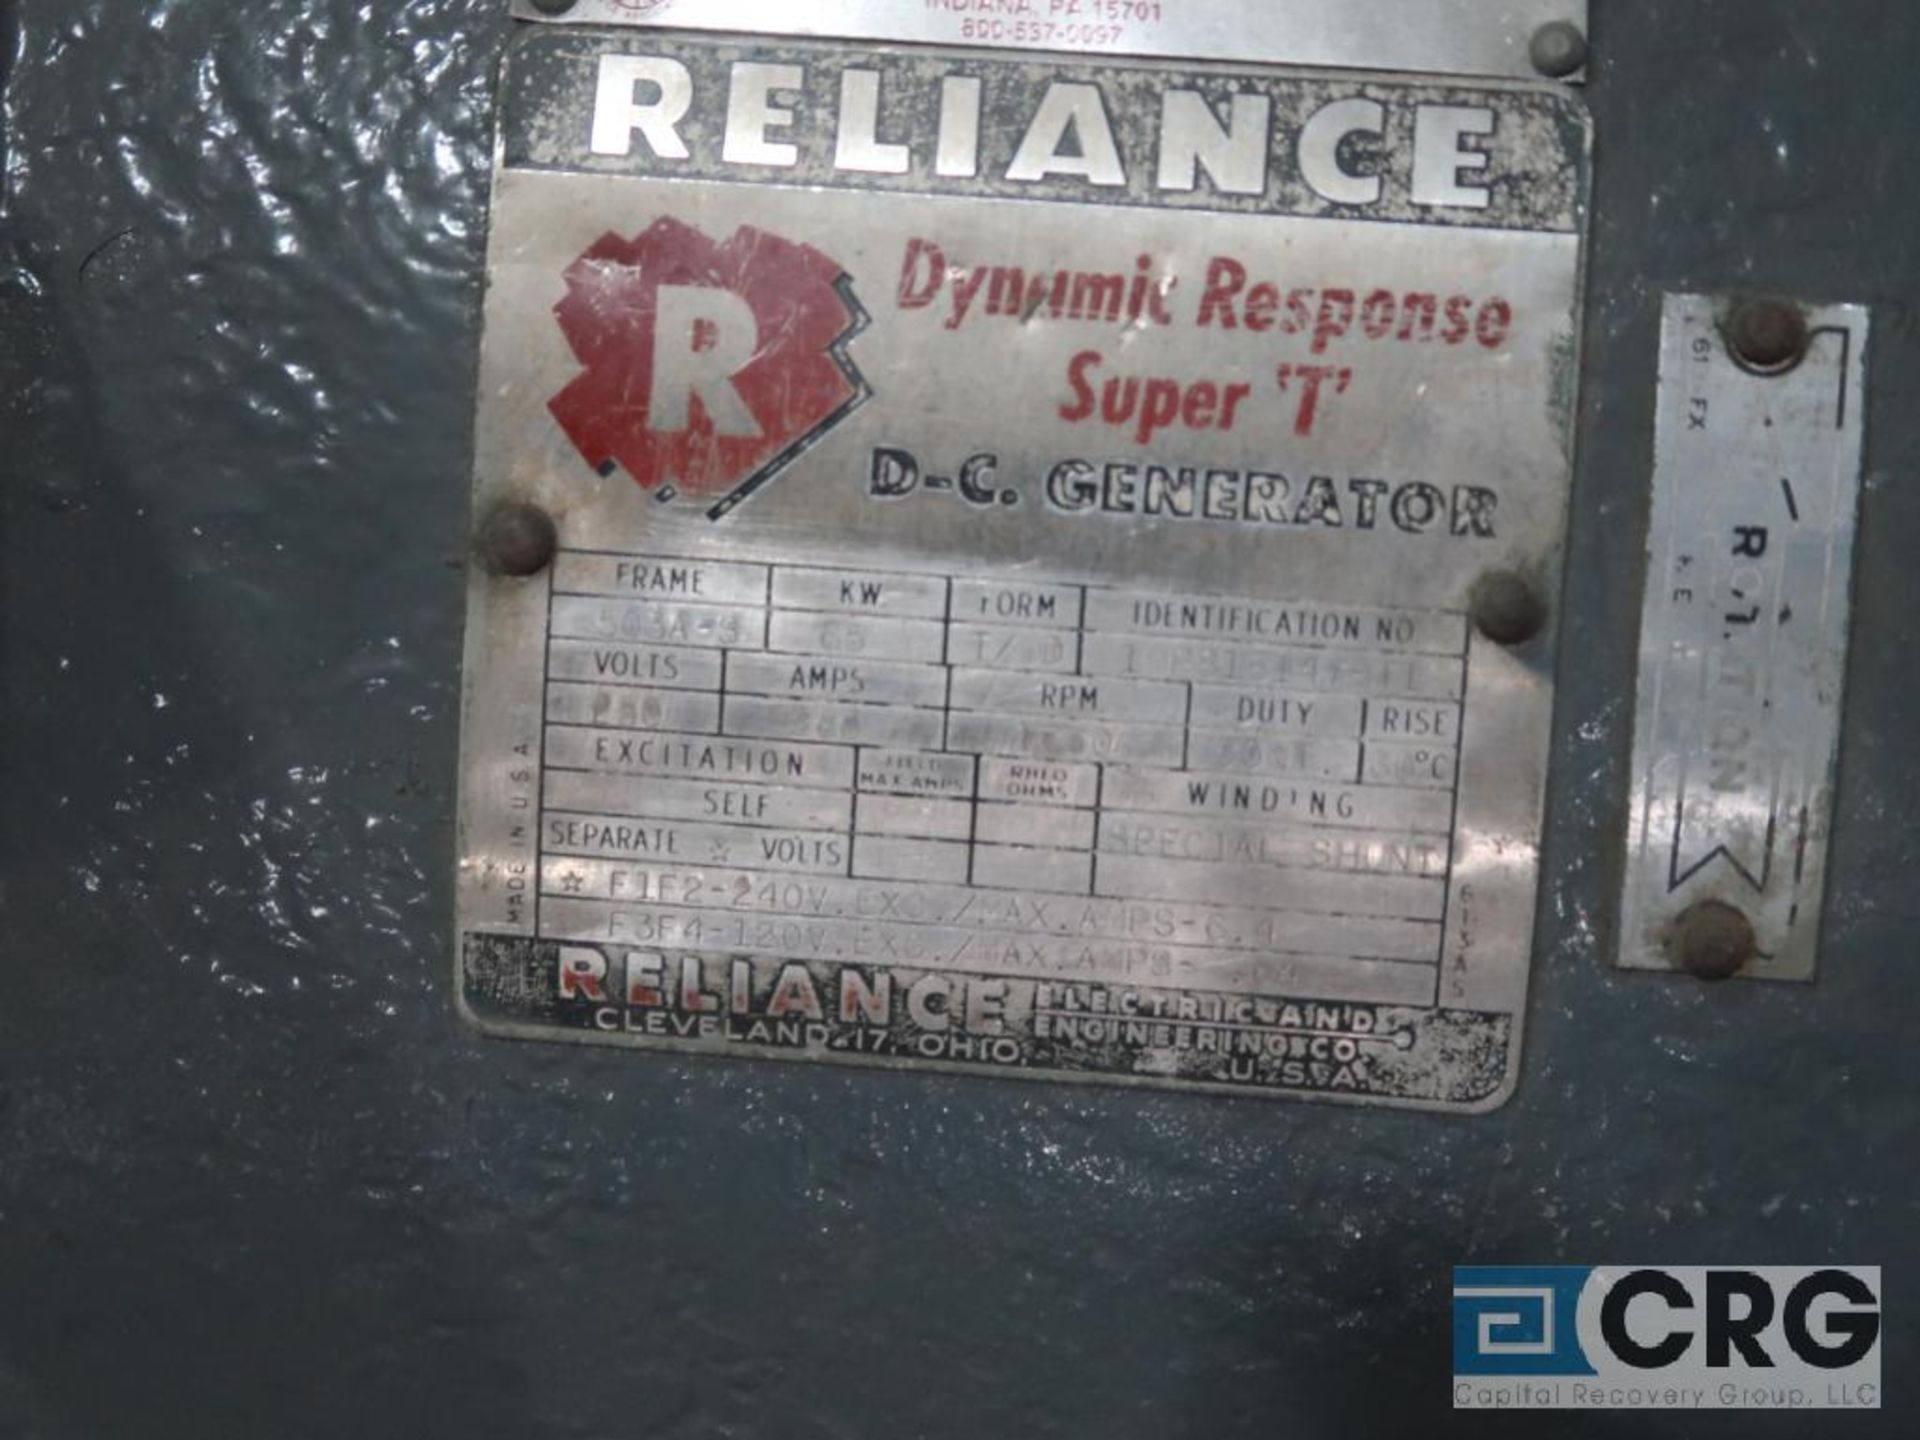 Reliance Dynamic Response Super T DC generator, 75 HP, 1,770 RPMs, 250 volt, 3 ph., 503A-S frame ( - Image 2 of 2